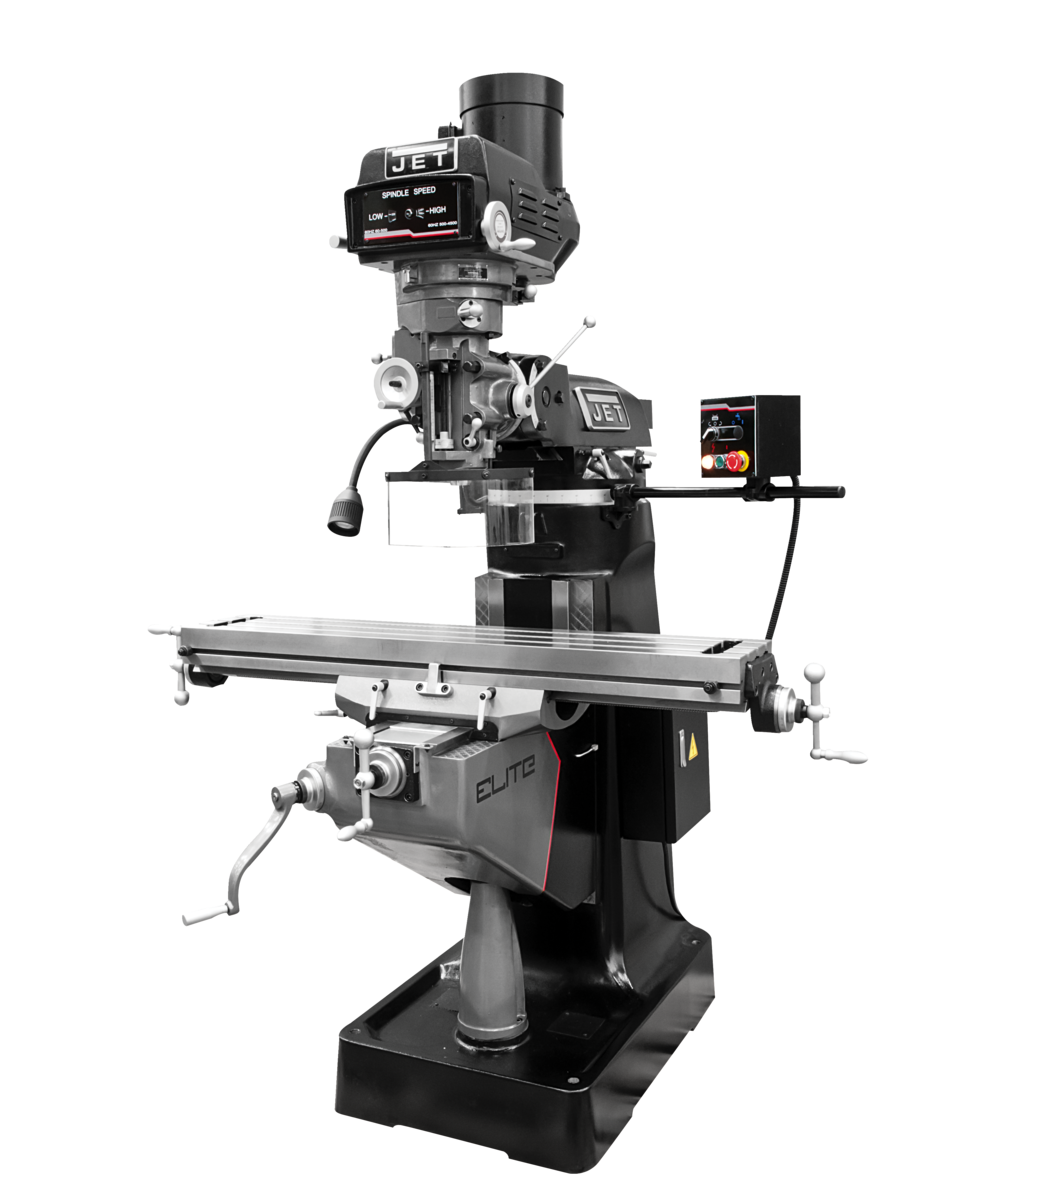 ETM-949 Mill with 3-Axis ACU-RITE 203  (Knee) DRO and X-Axis JET Powerfeed and USA Made Air Draw Bar